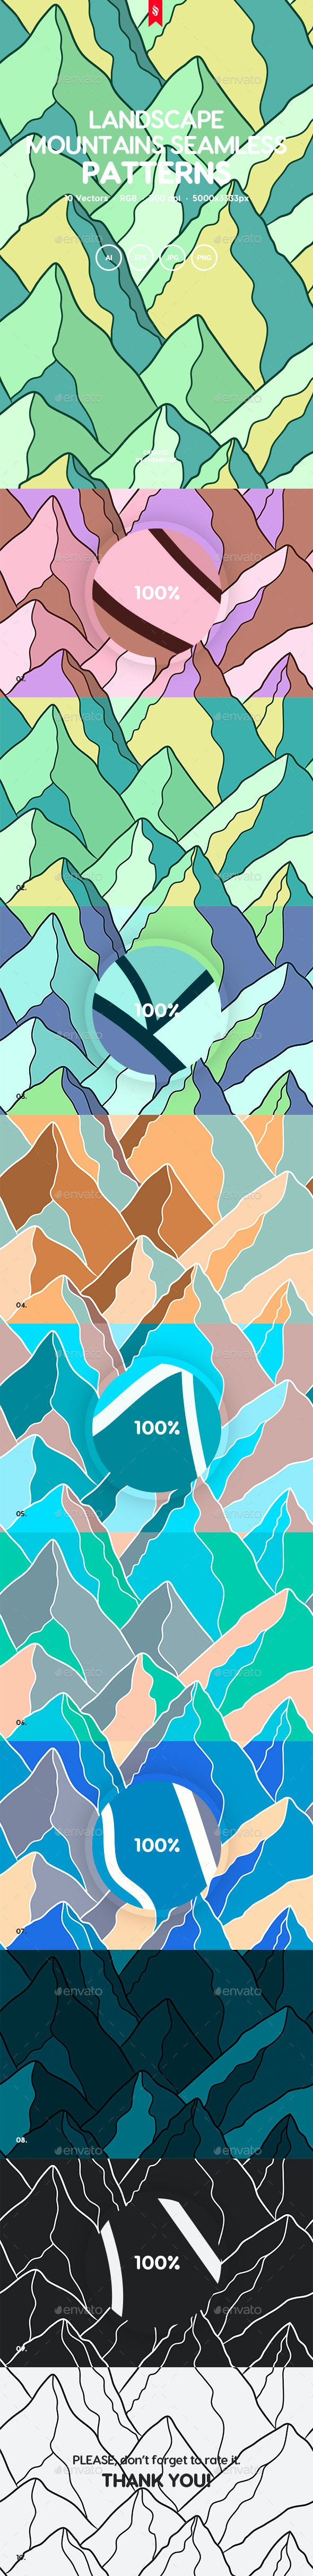 Landscape Mountains Seamless Patterns - Backgrounds Graphics